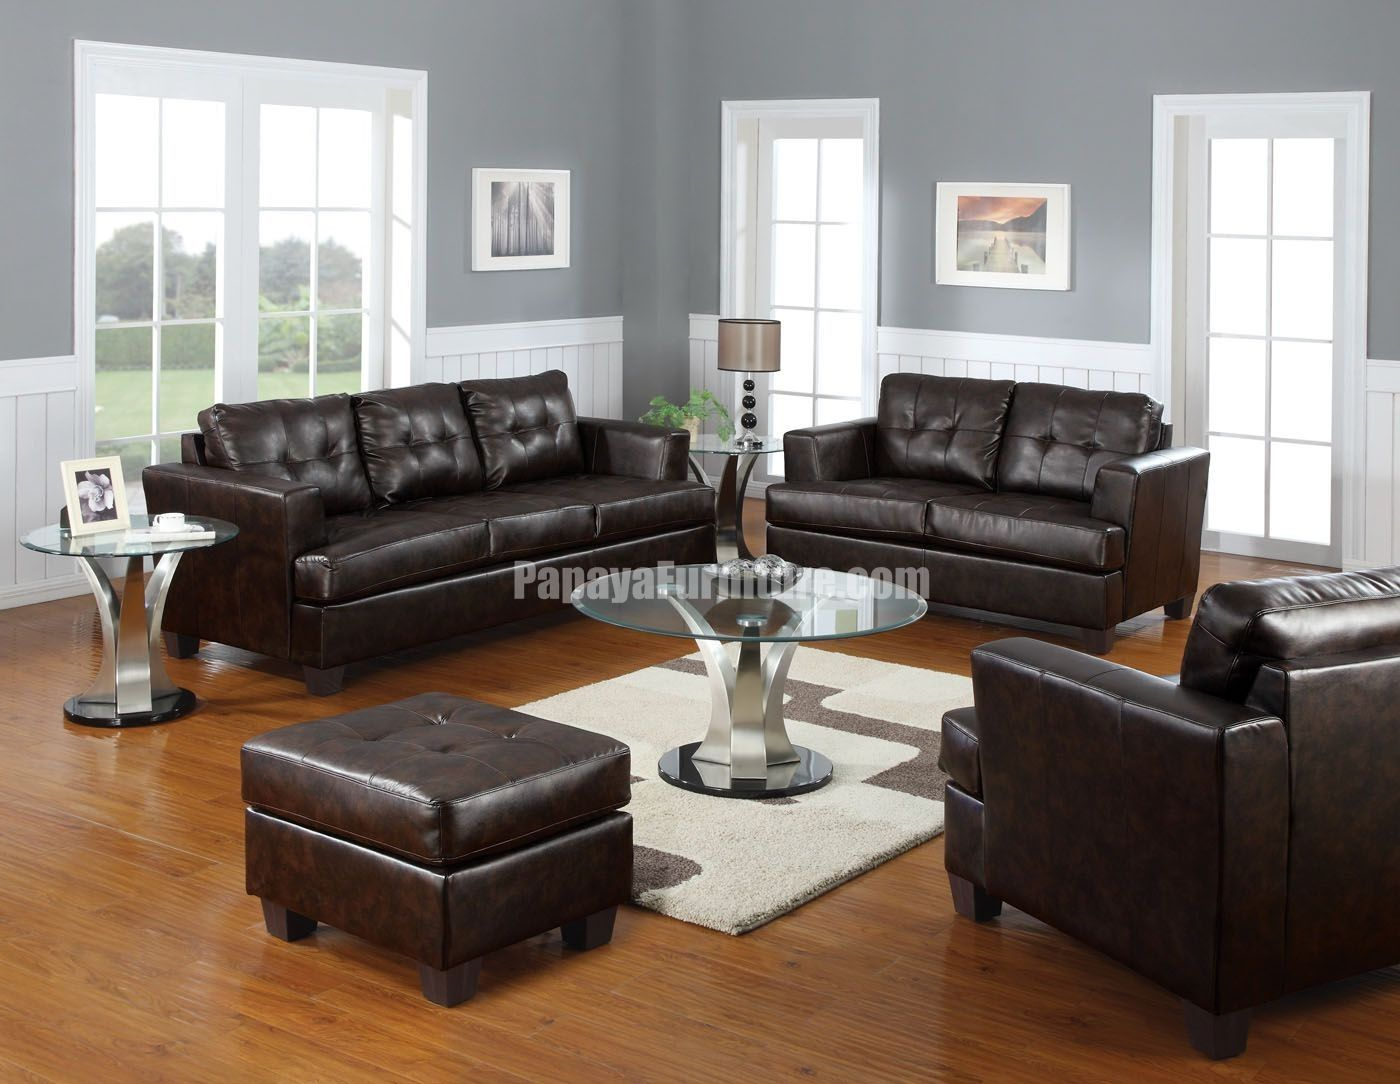 brown color leather sofa natural wood tray table dark couch decorating ideas